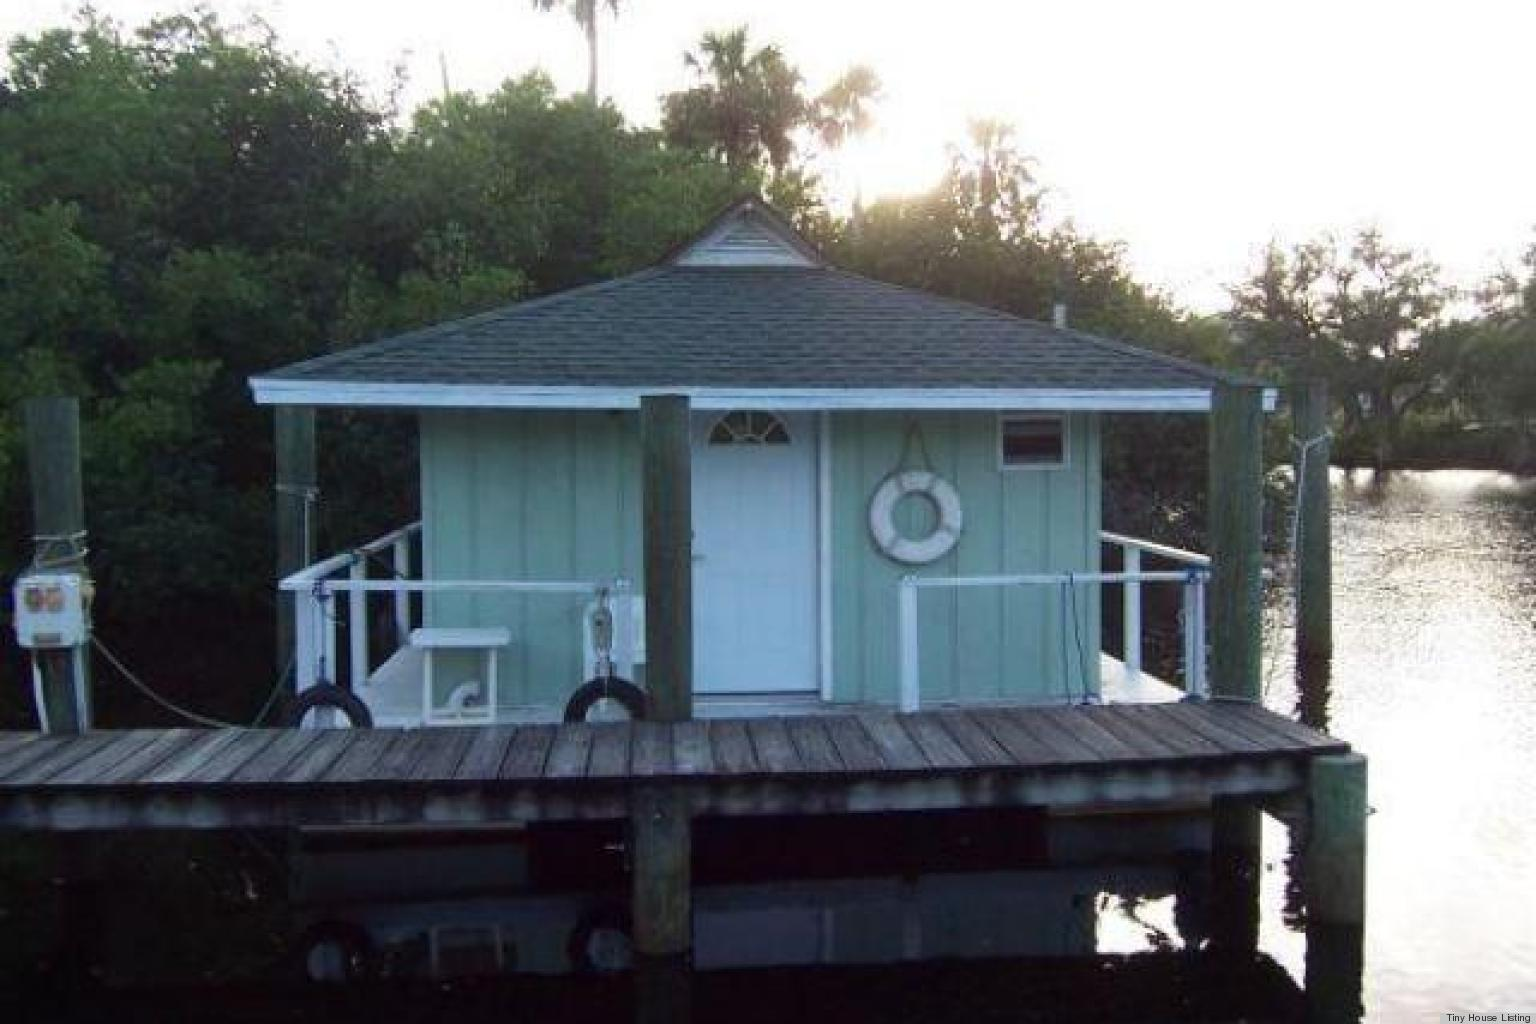 Tiny houses on the beach in florida - Floating Bungalow For Sale Offers Exotic Tiny Home Living In America Photos Huffpost